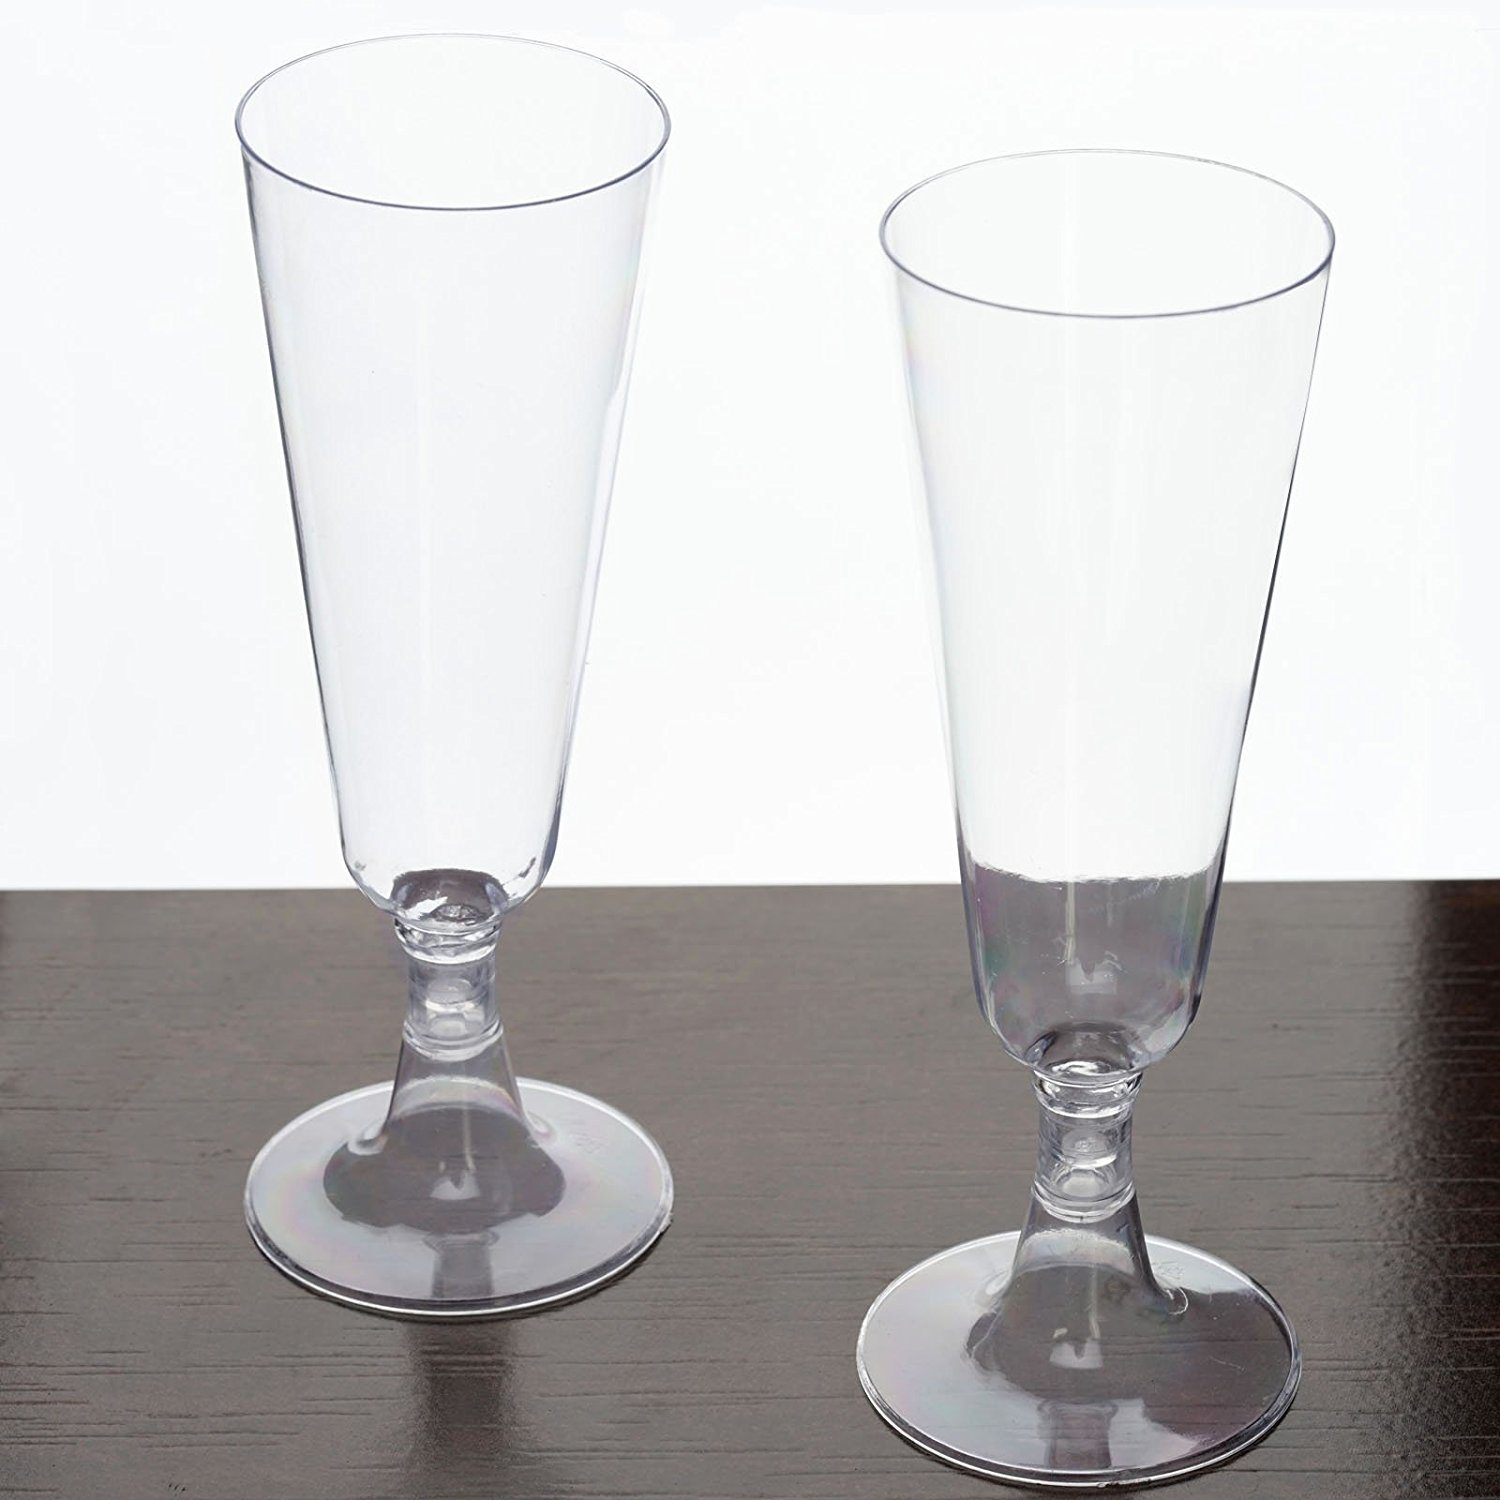 Two-Piece Hard Plastic Mimosa/Champagne Flutes, 5 Oz, Clear